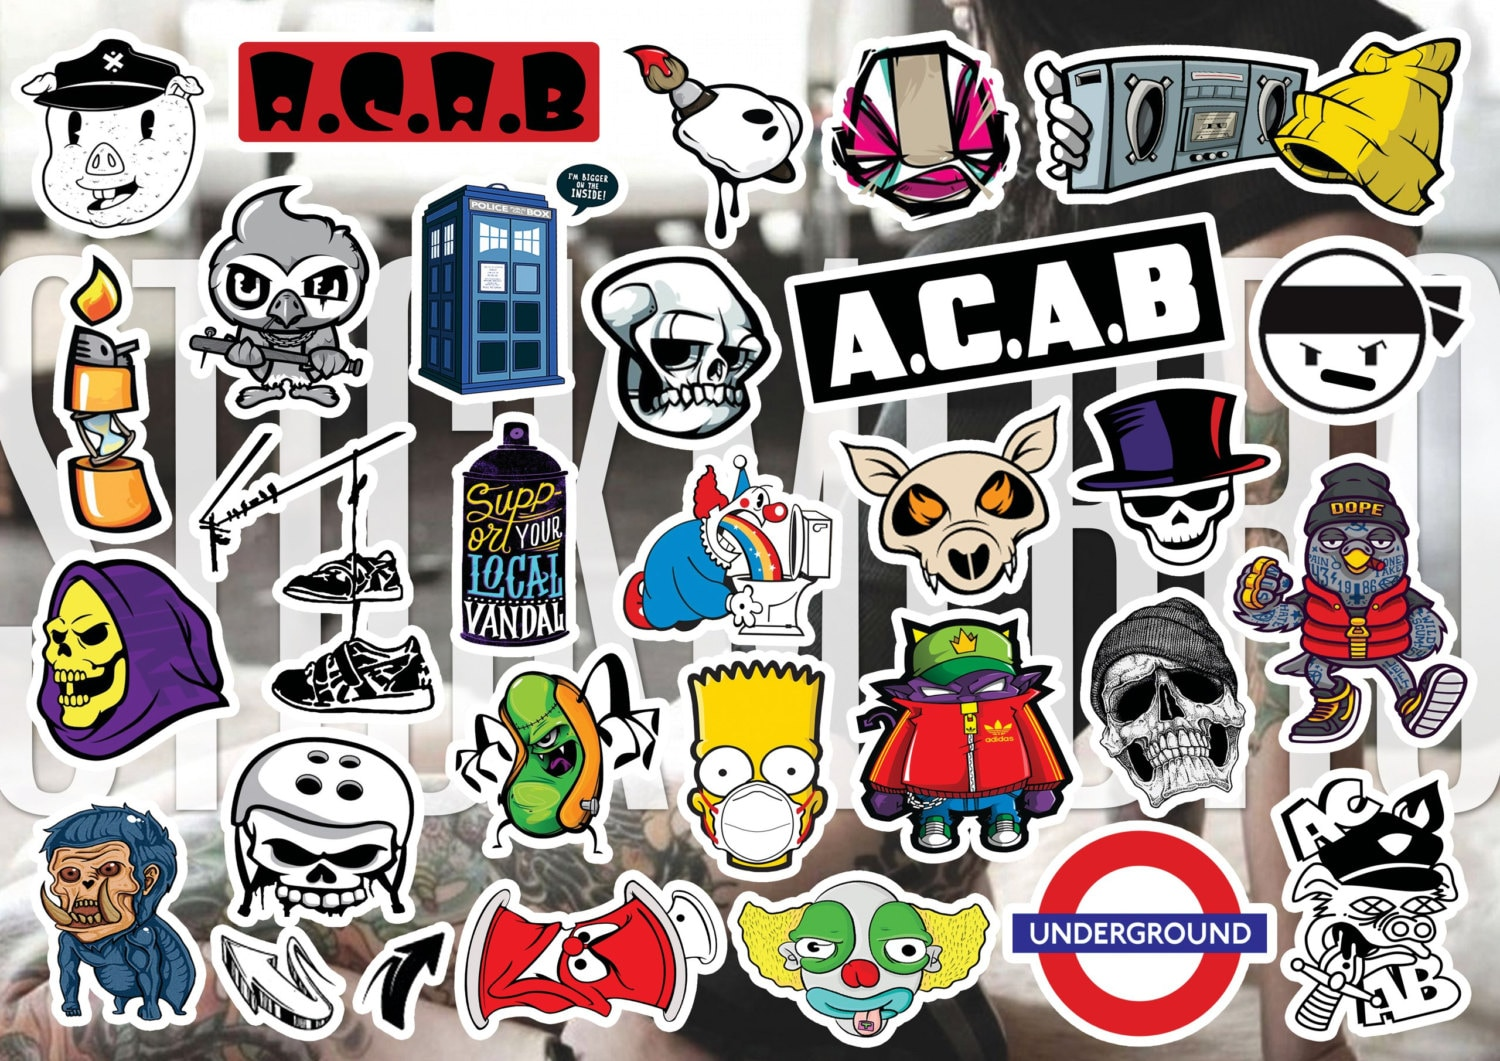 ACAB / A.C.A.B Story, Funny Decals, Hipster Vinyl Tumblr